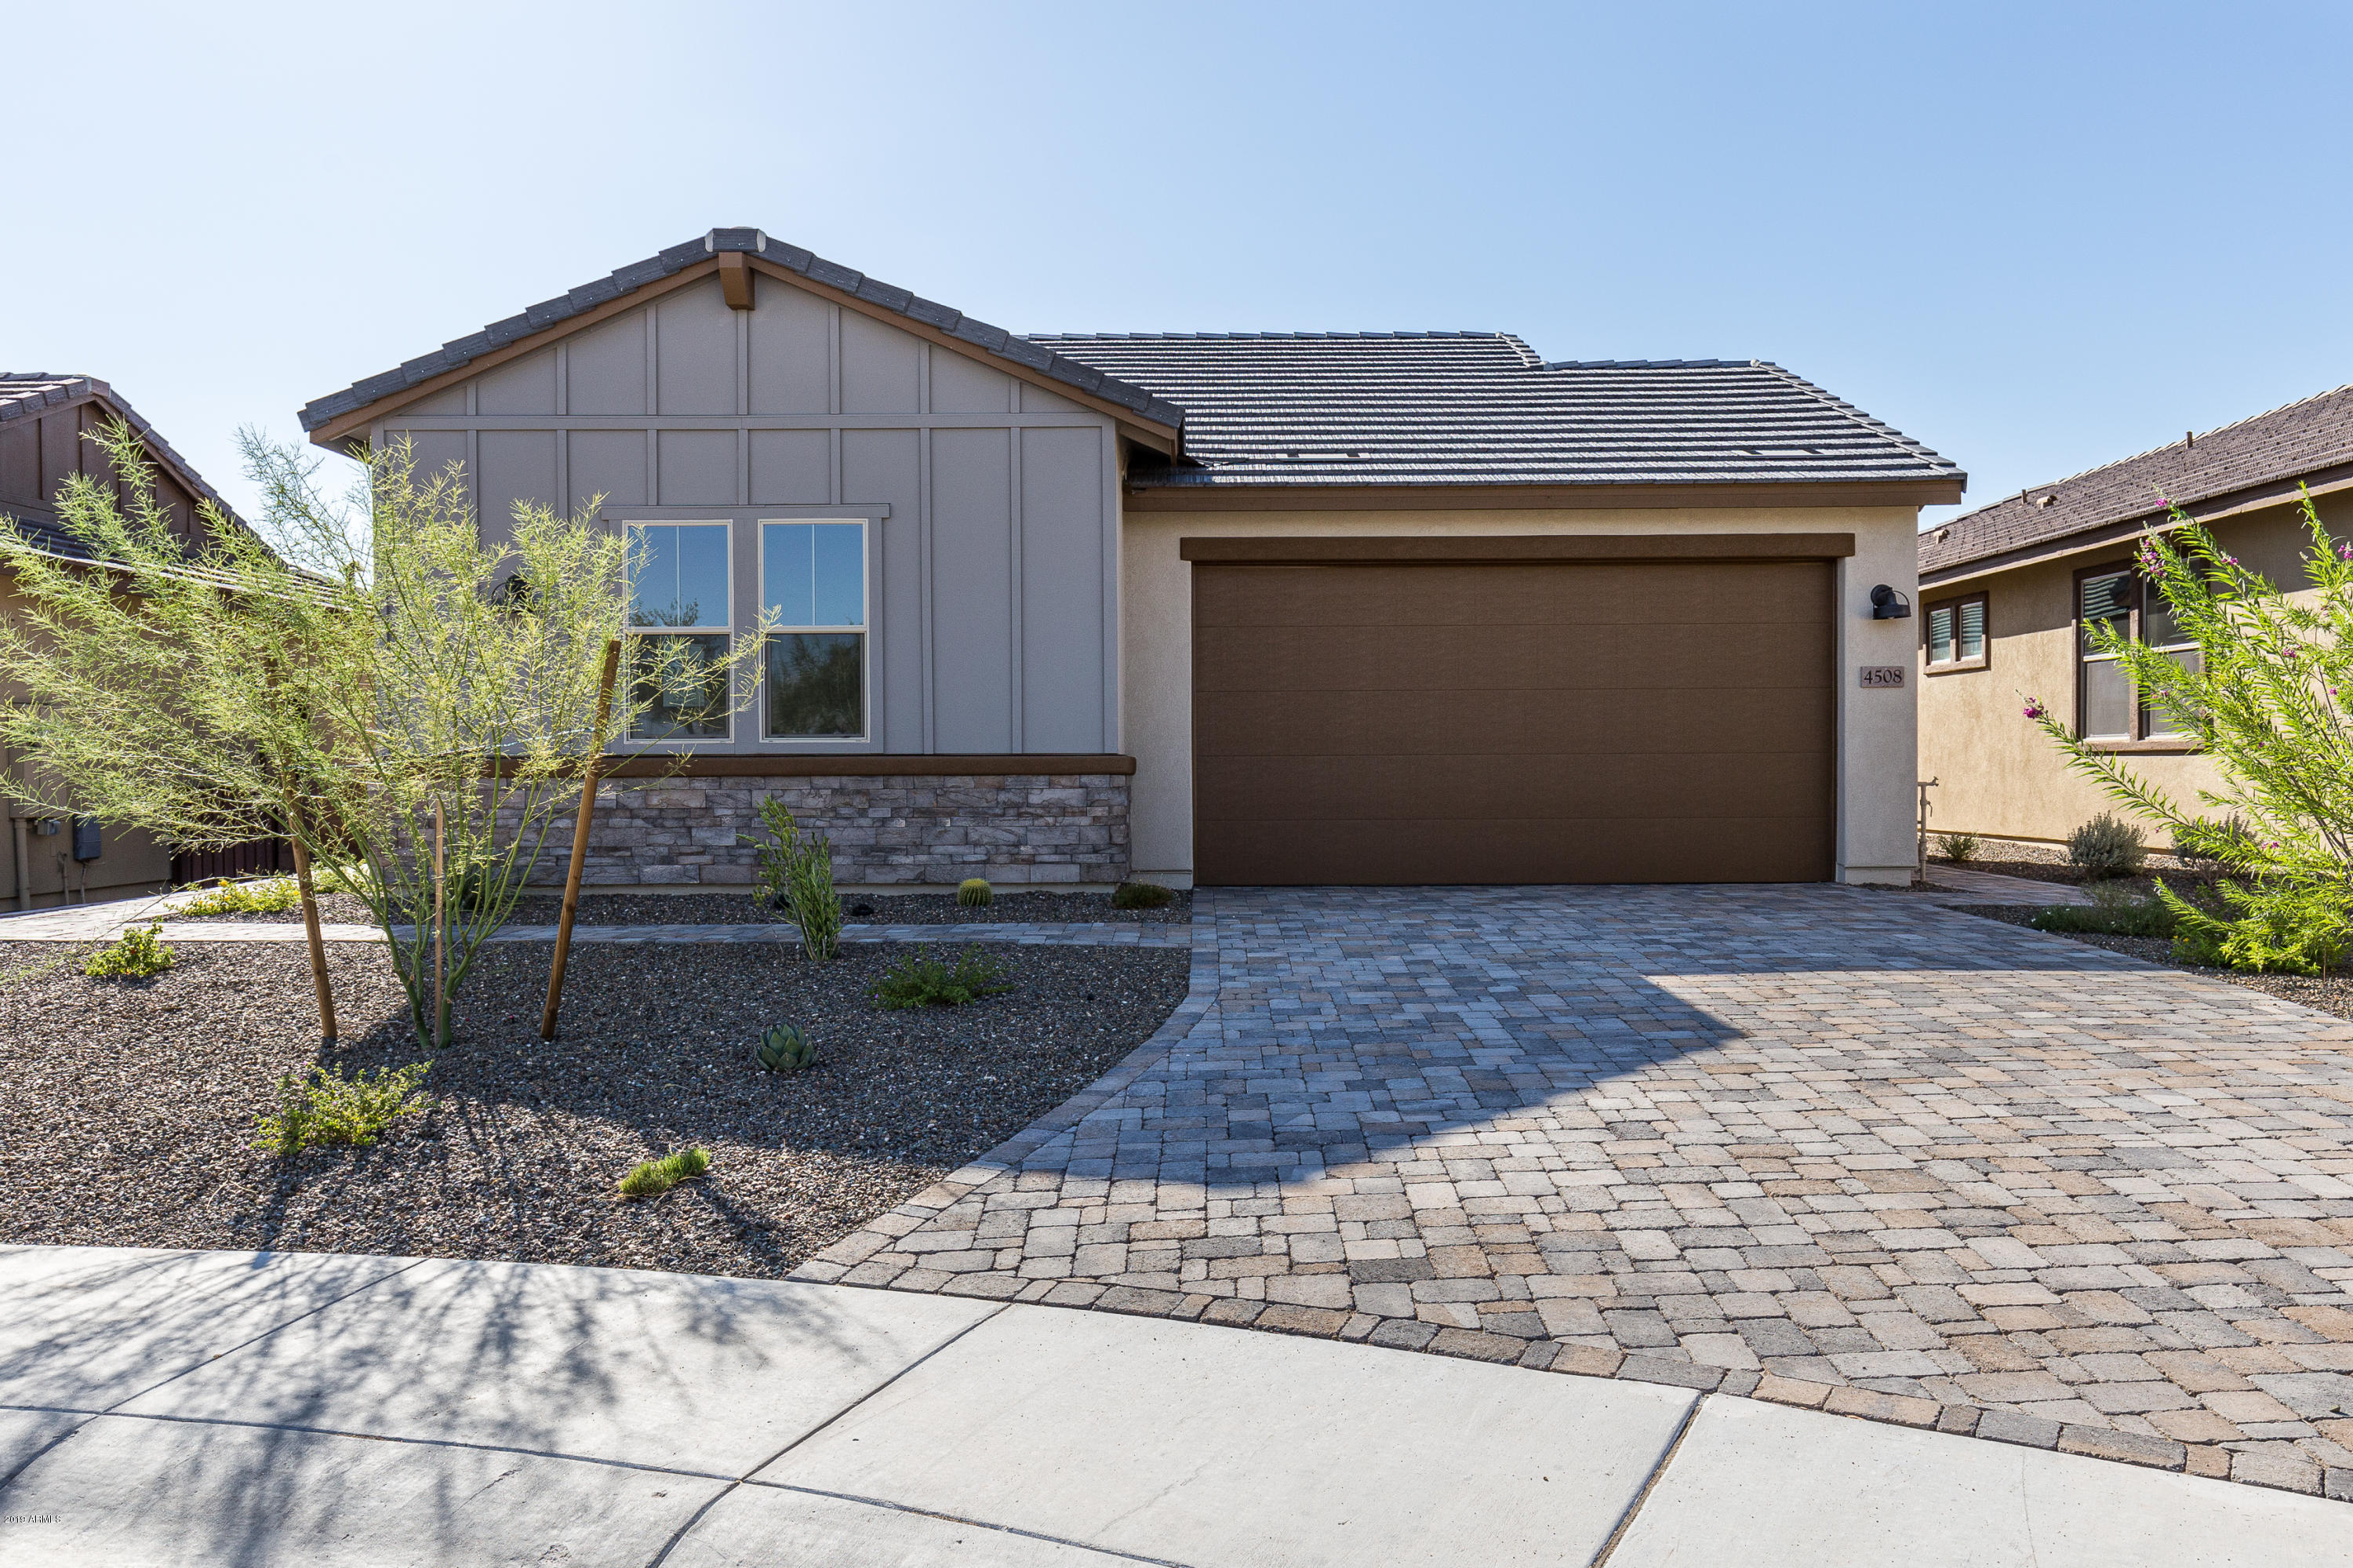 Photo of 4508 Besant Way, Wickenburg, AZ 85390